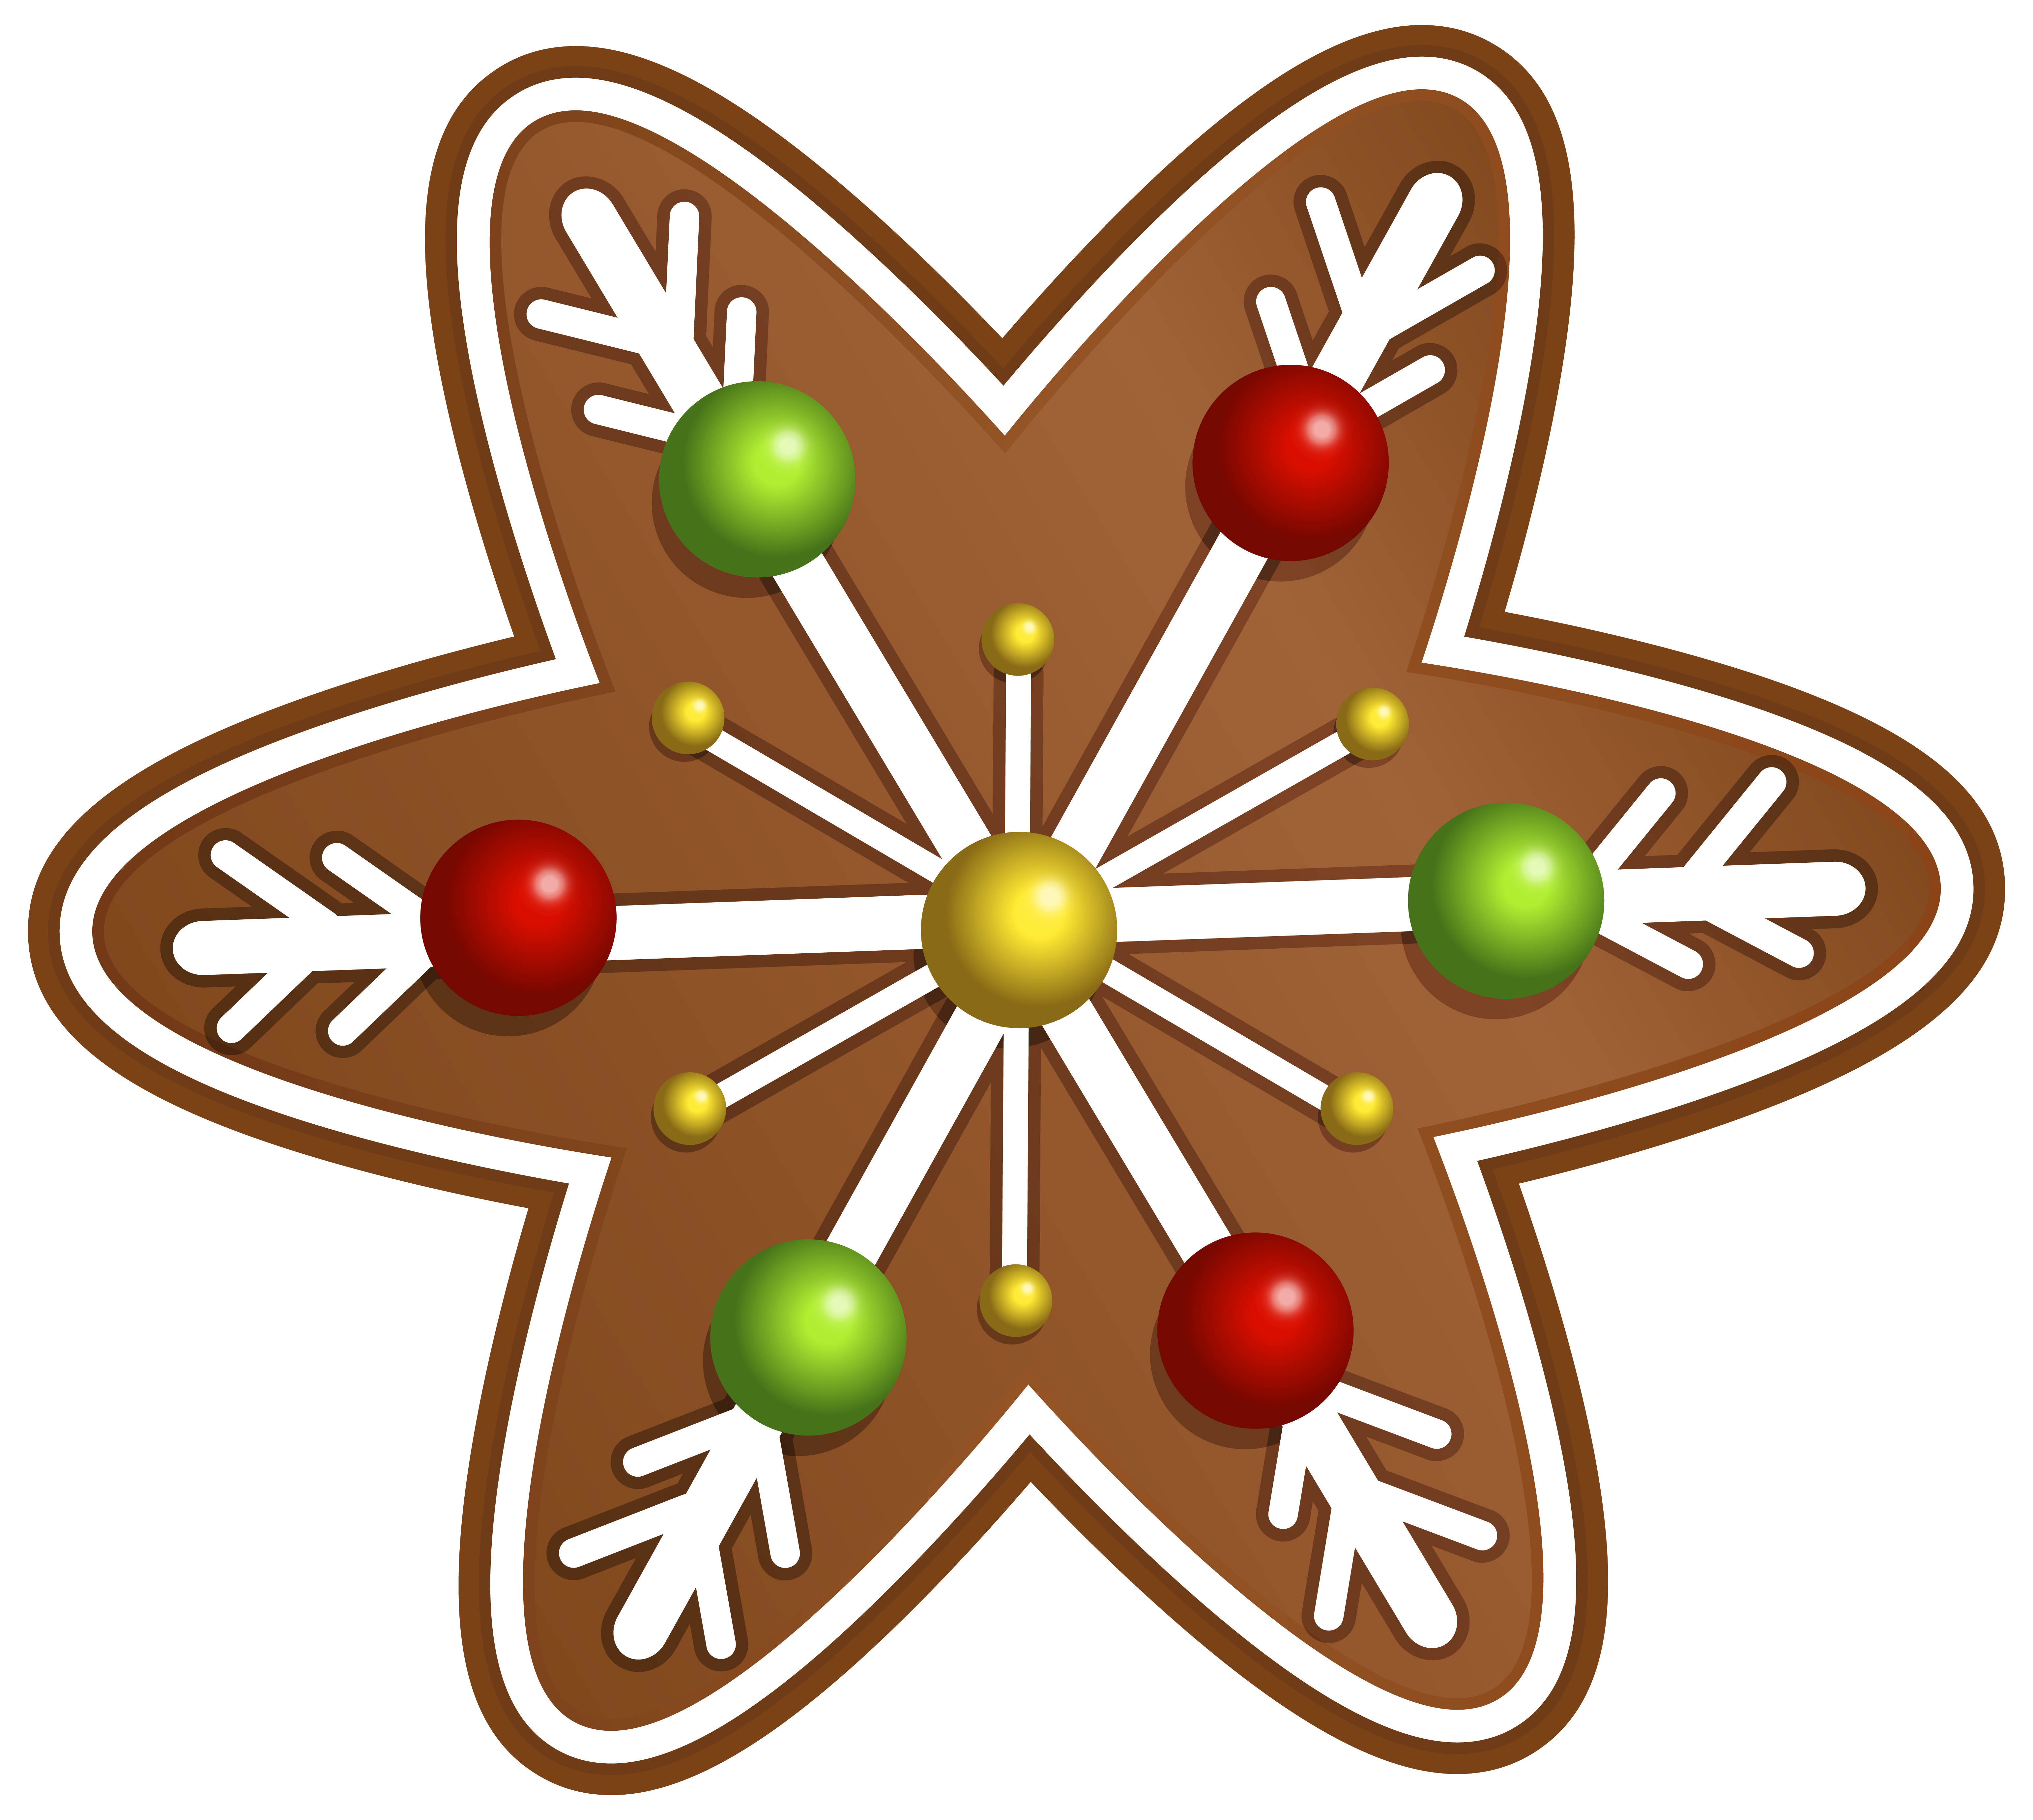 Christmas cookie star png. Holly clipart holiday